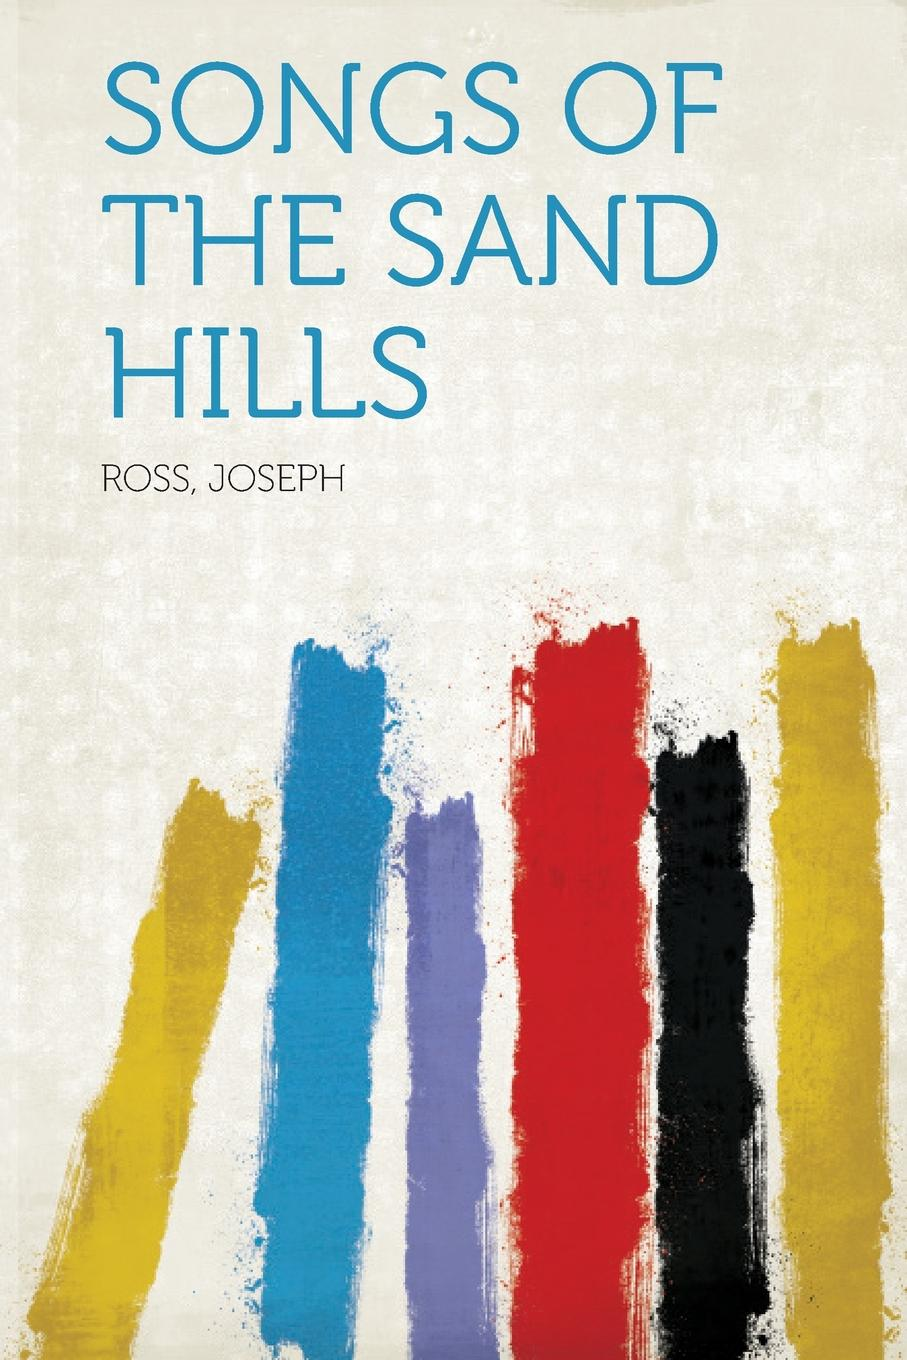 Songs of the Sand Hills